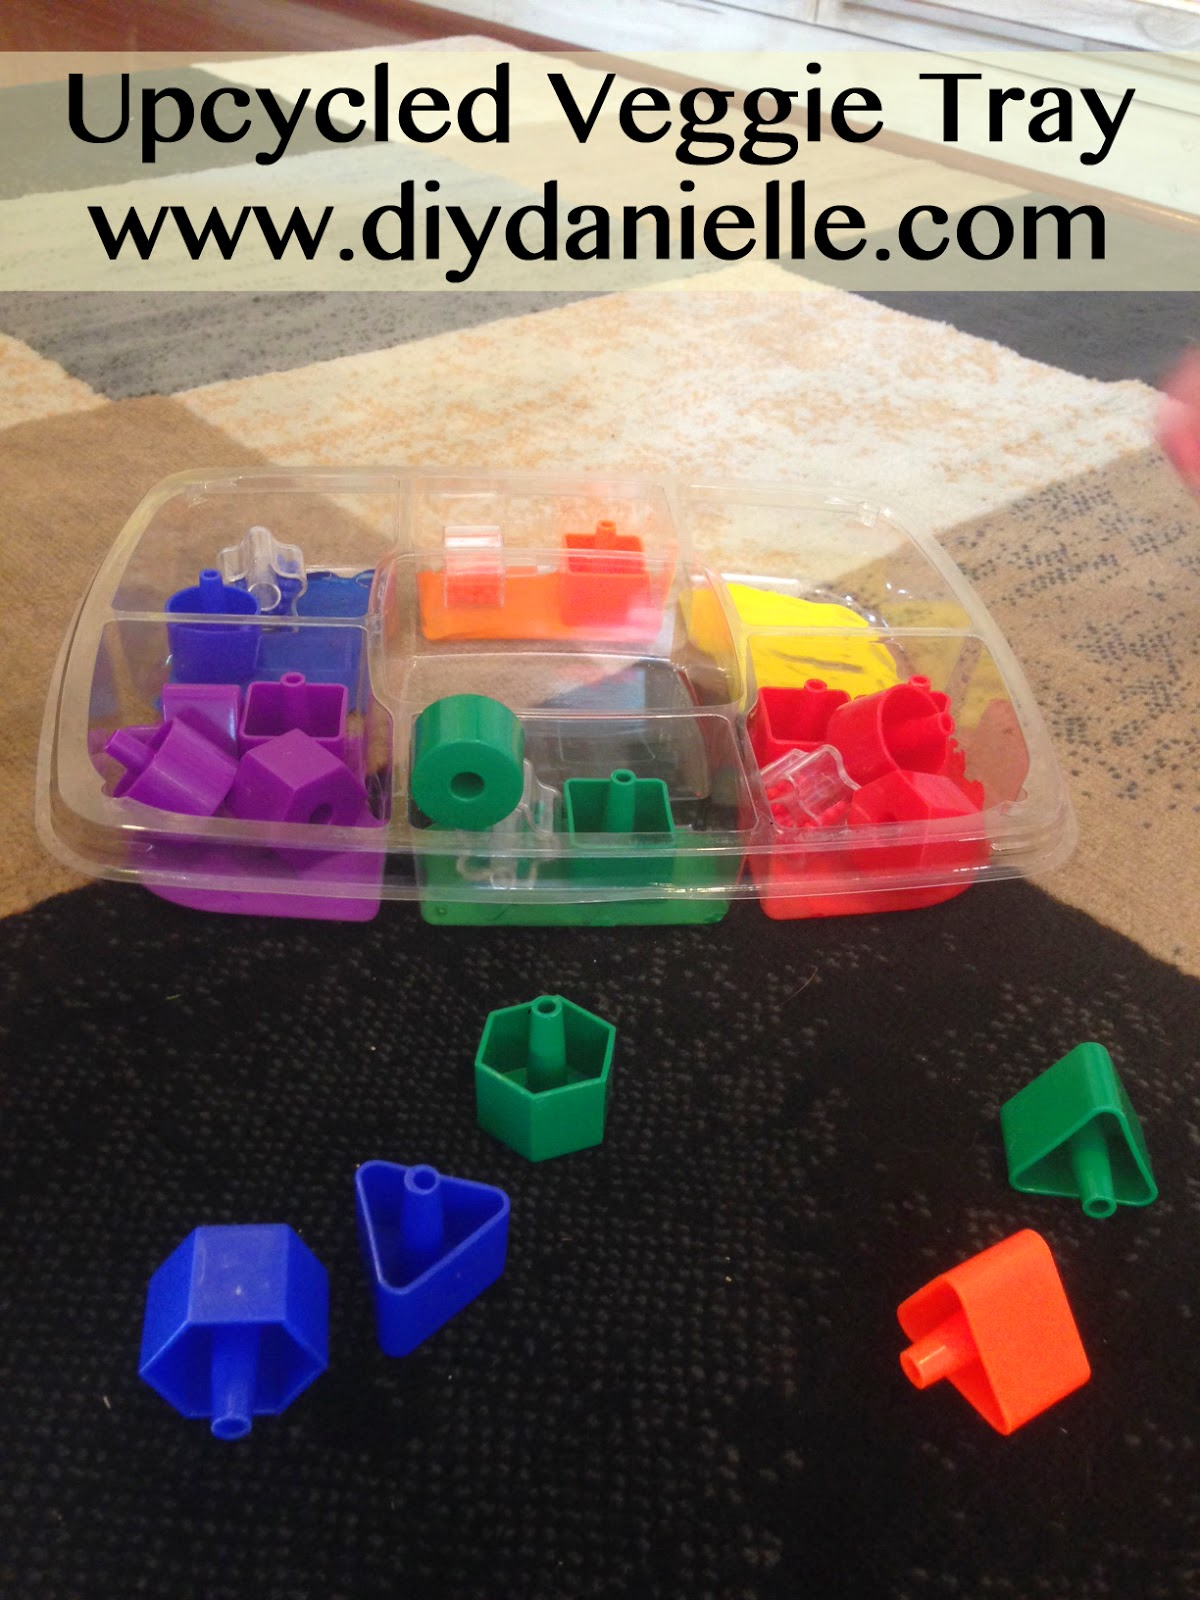 How to upcycle a vegetable tray into a learning activity for toddlers.